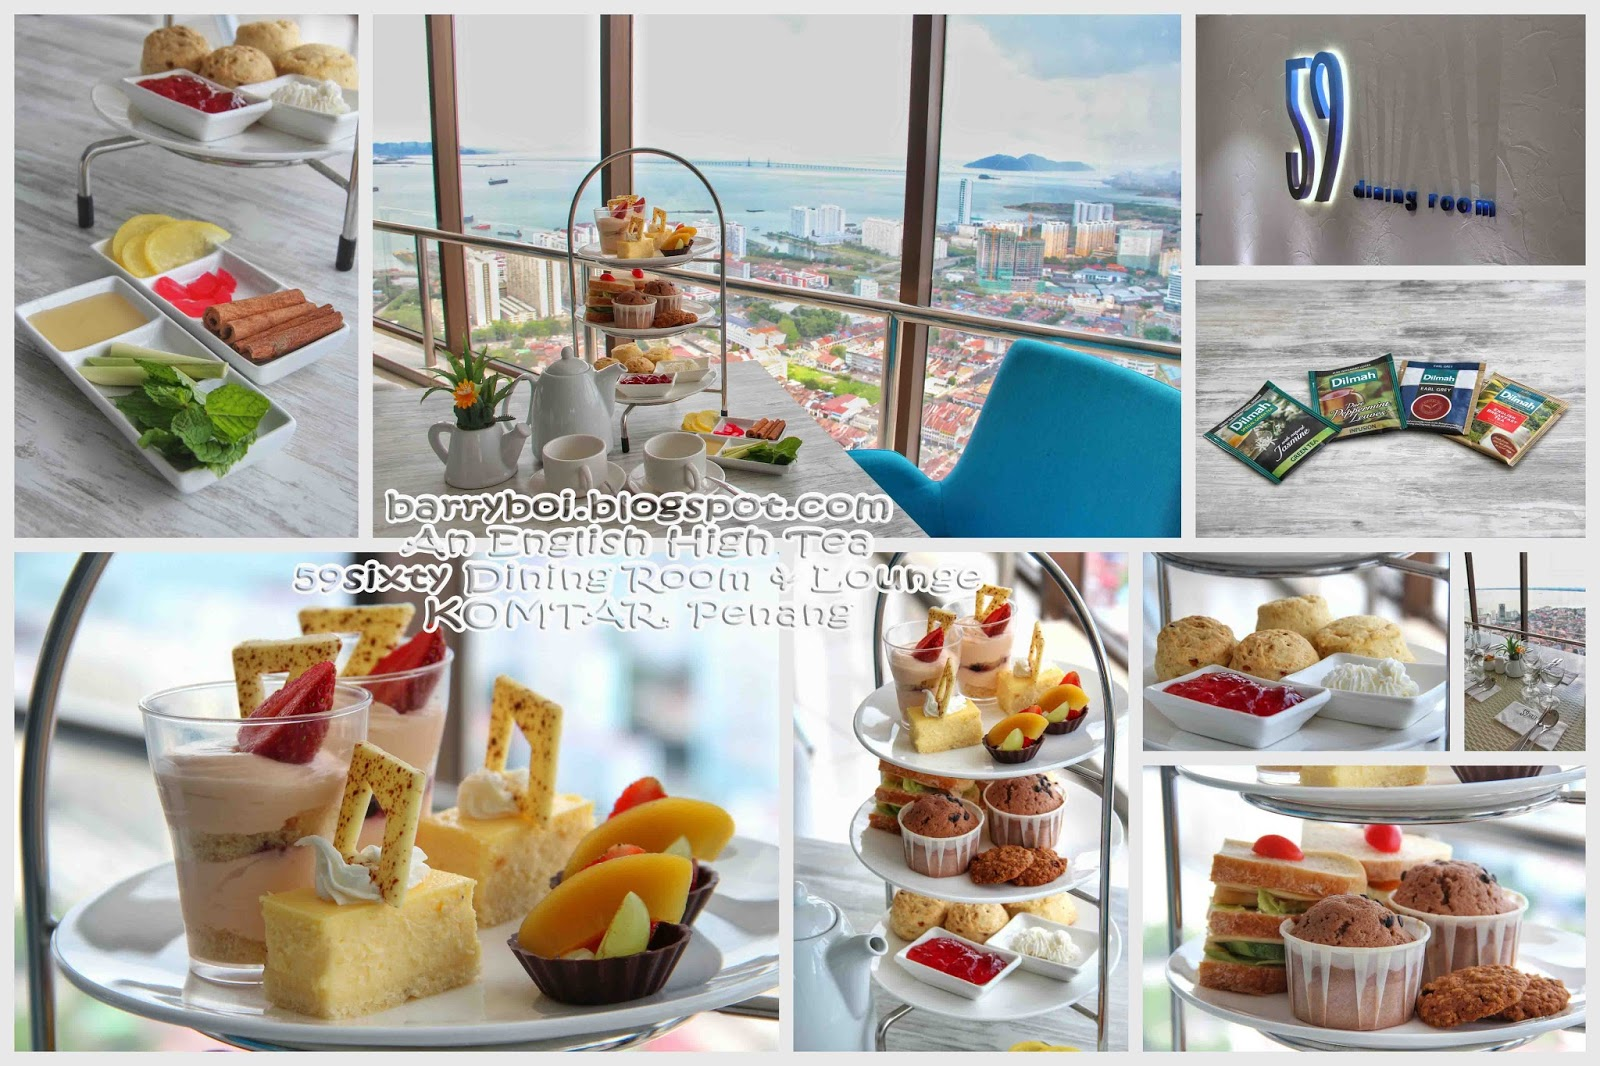 Having High Tea Back Here At 59sixty Dining Room Lounge The TOP Is A Experience Unlike Any Other One May Think Well Its Just Another